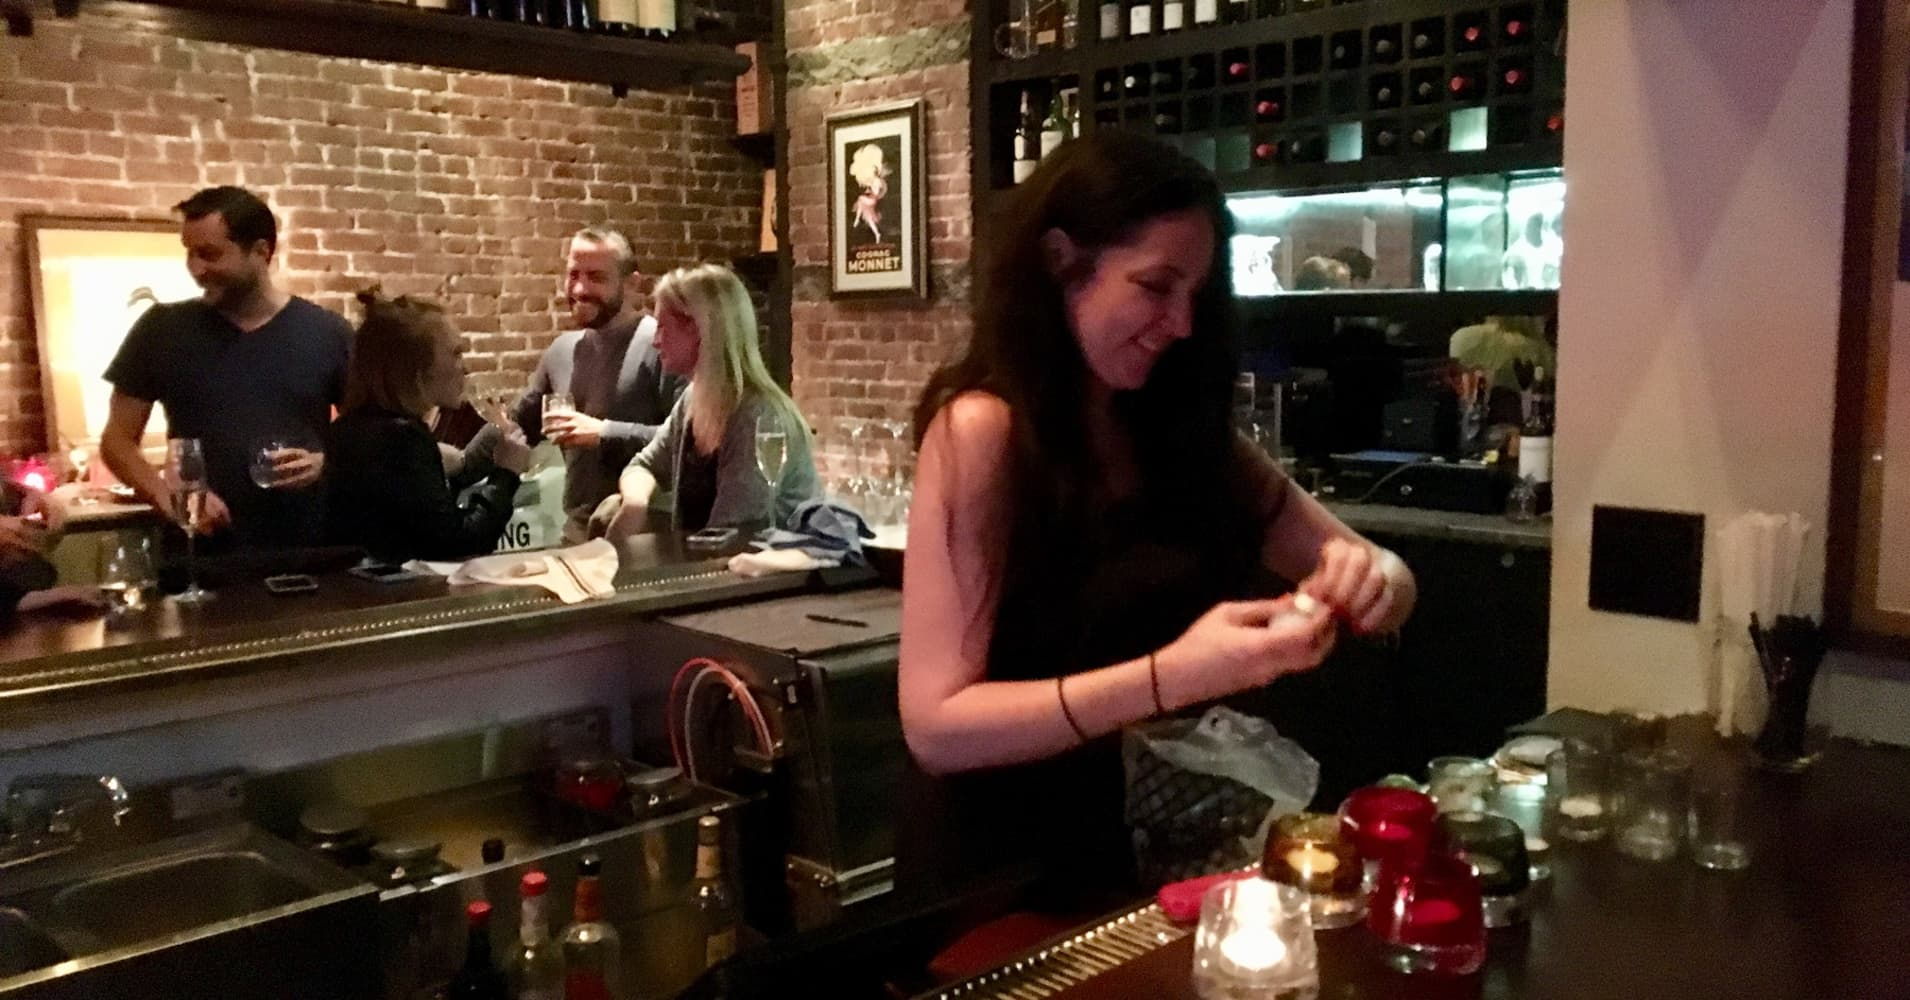 Caitlin Cahill works at Guyer's on the Upper West Side